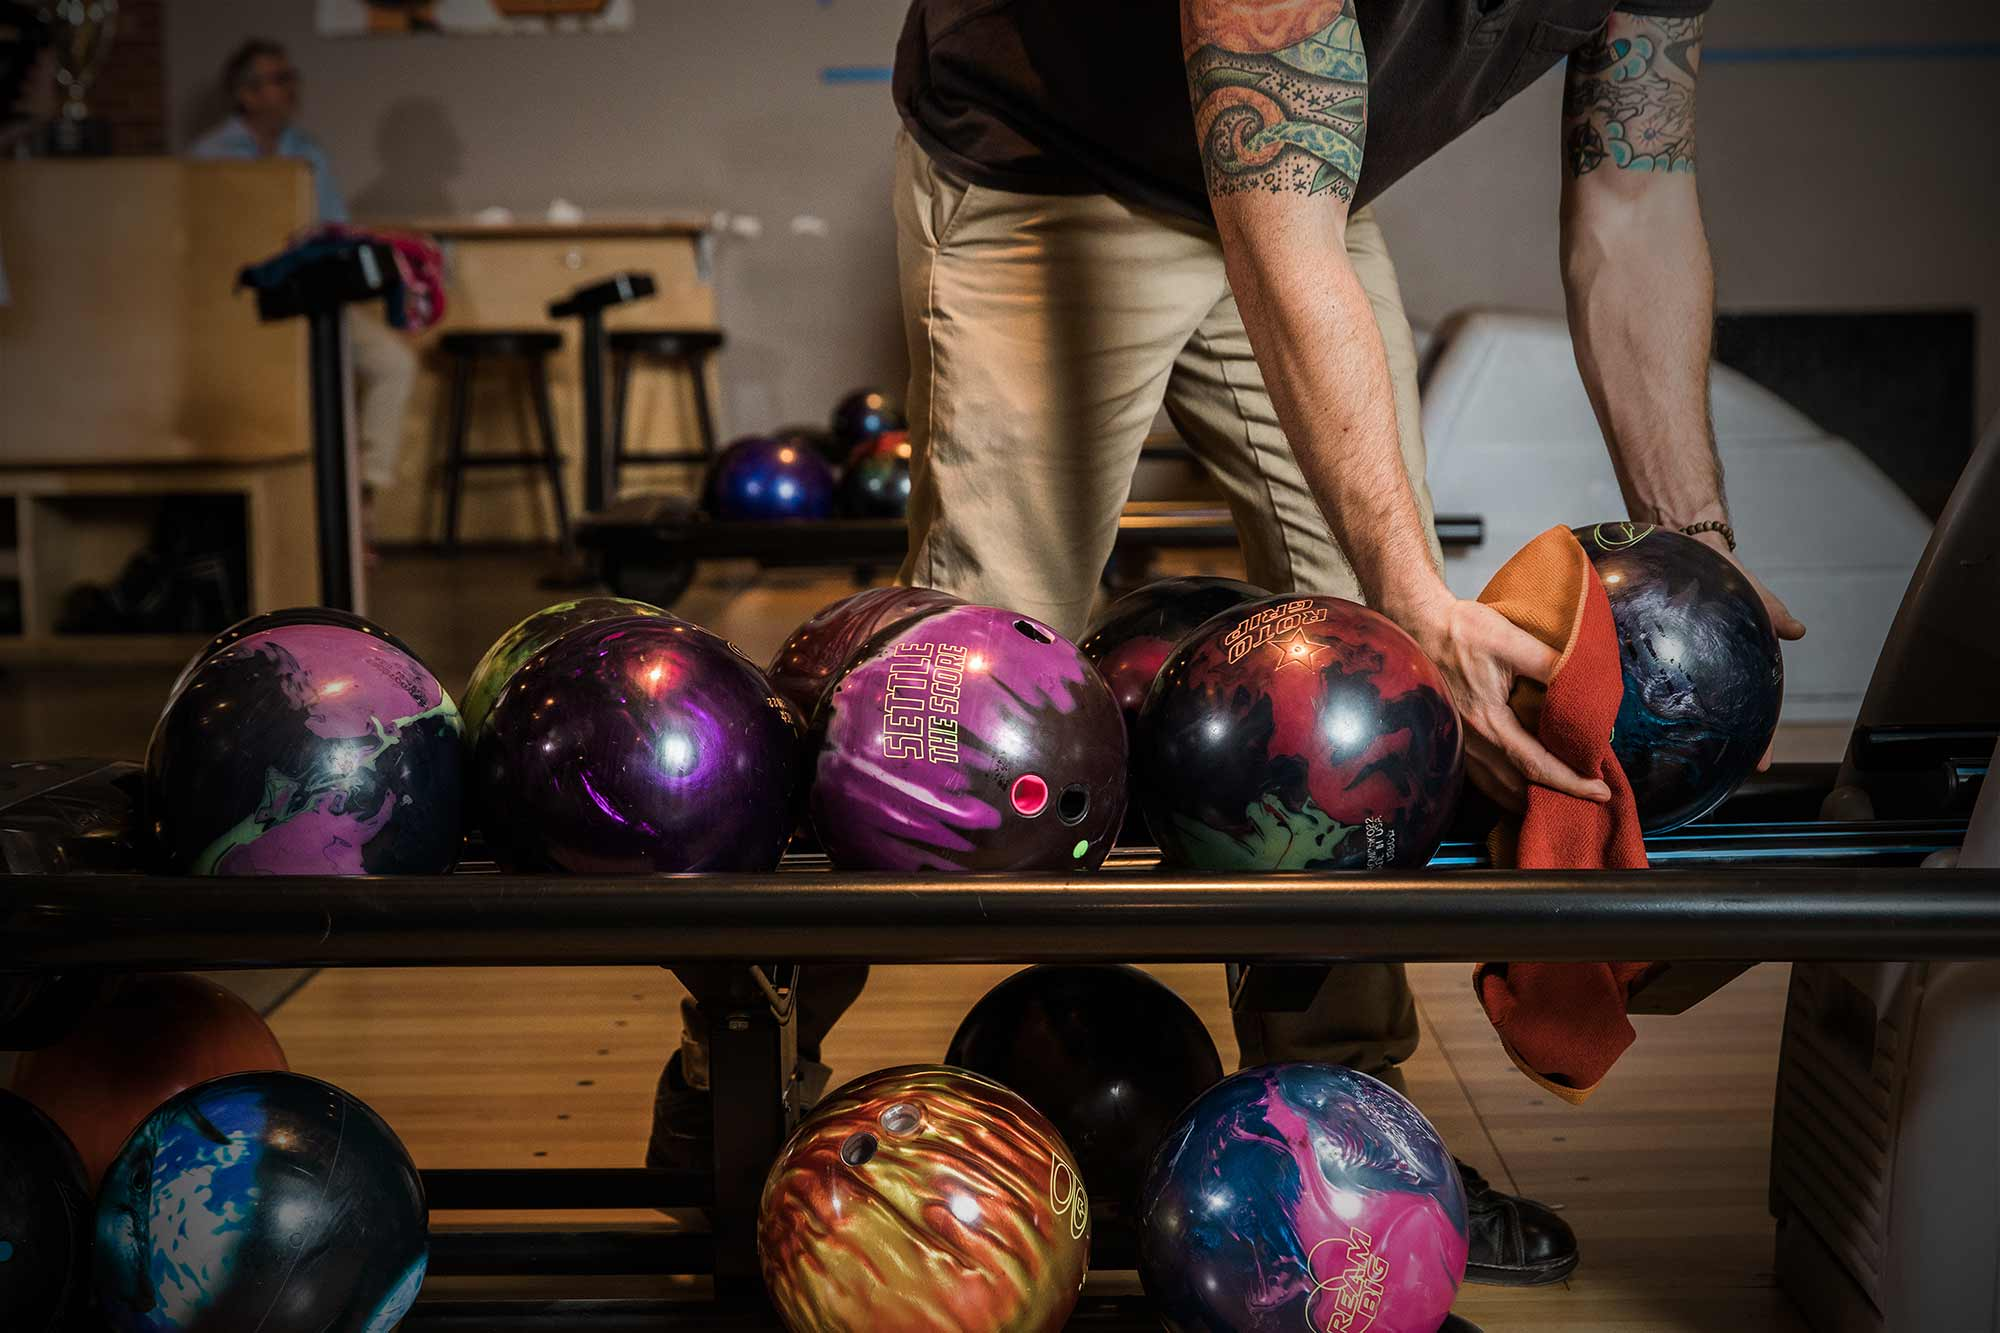 Colorful bowling balls being picked up by man with tattoos